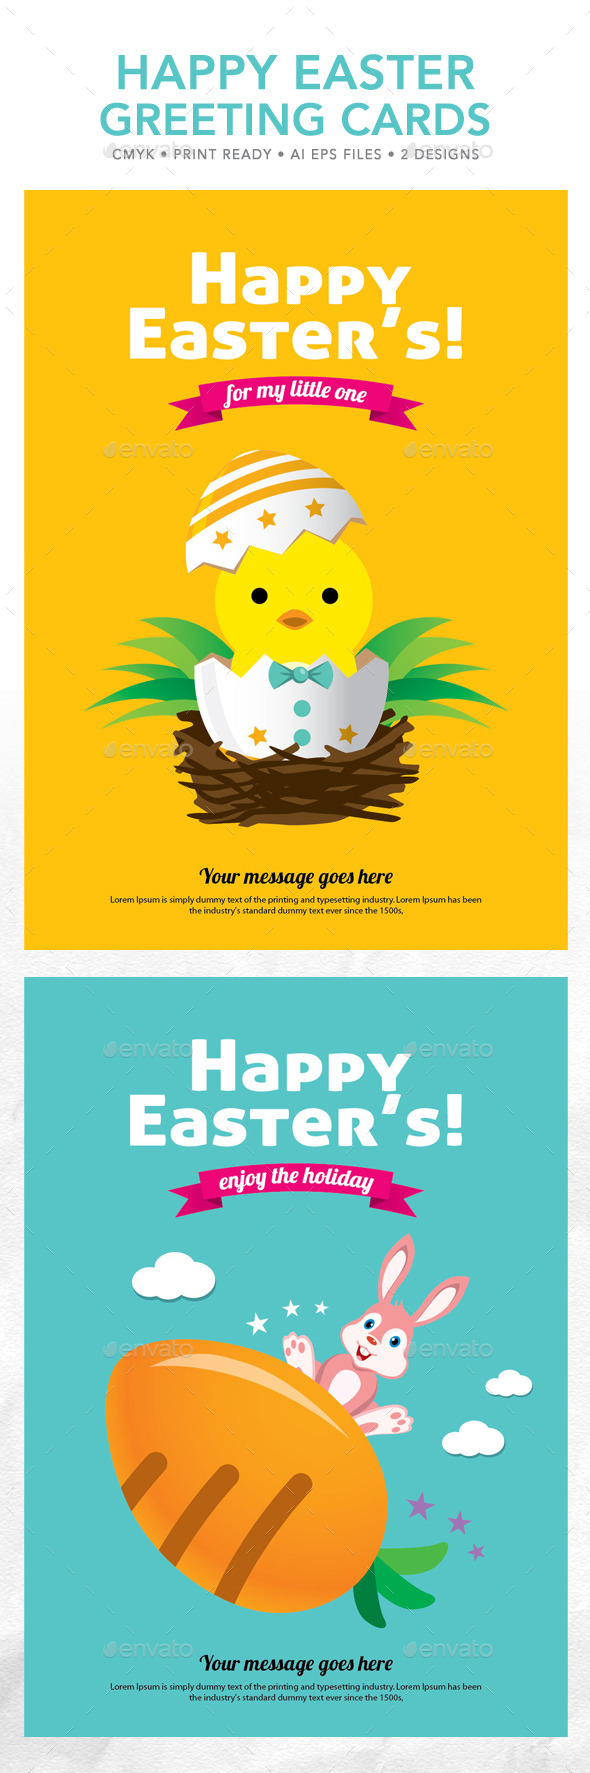 GraphicRiver Happy Easter Greeting Cards 10628467